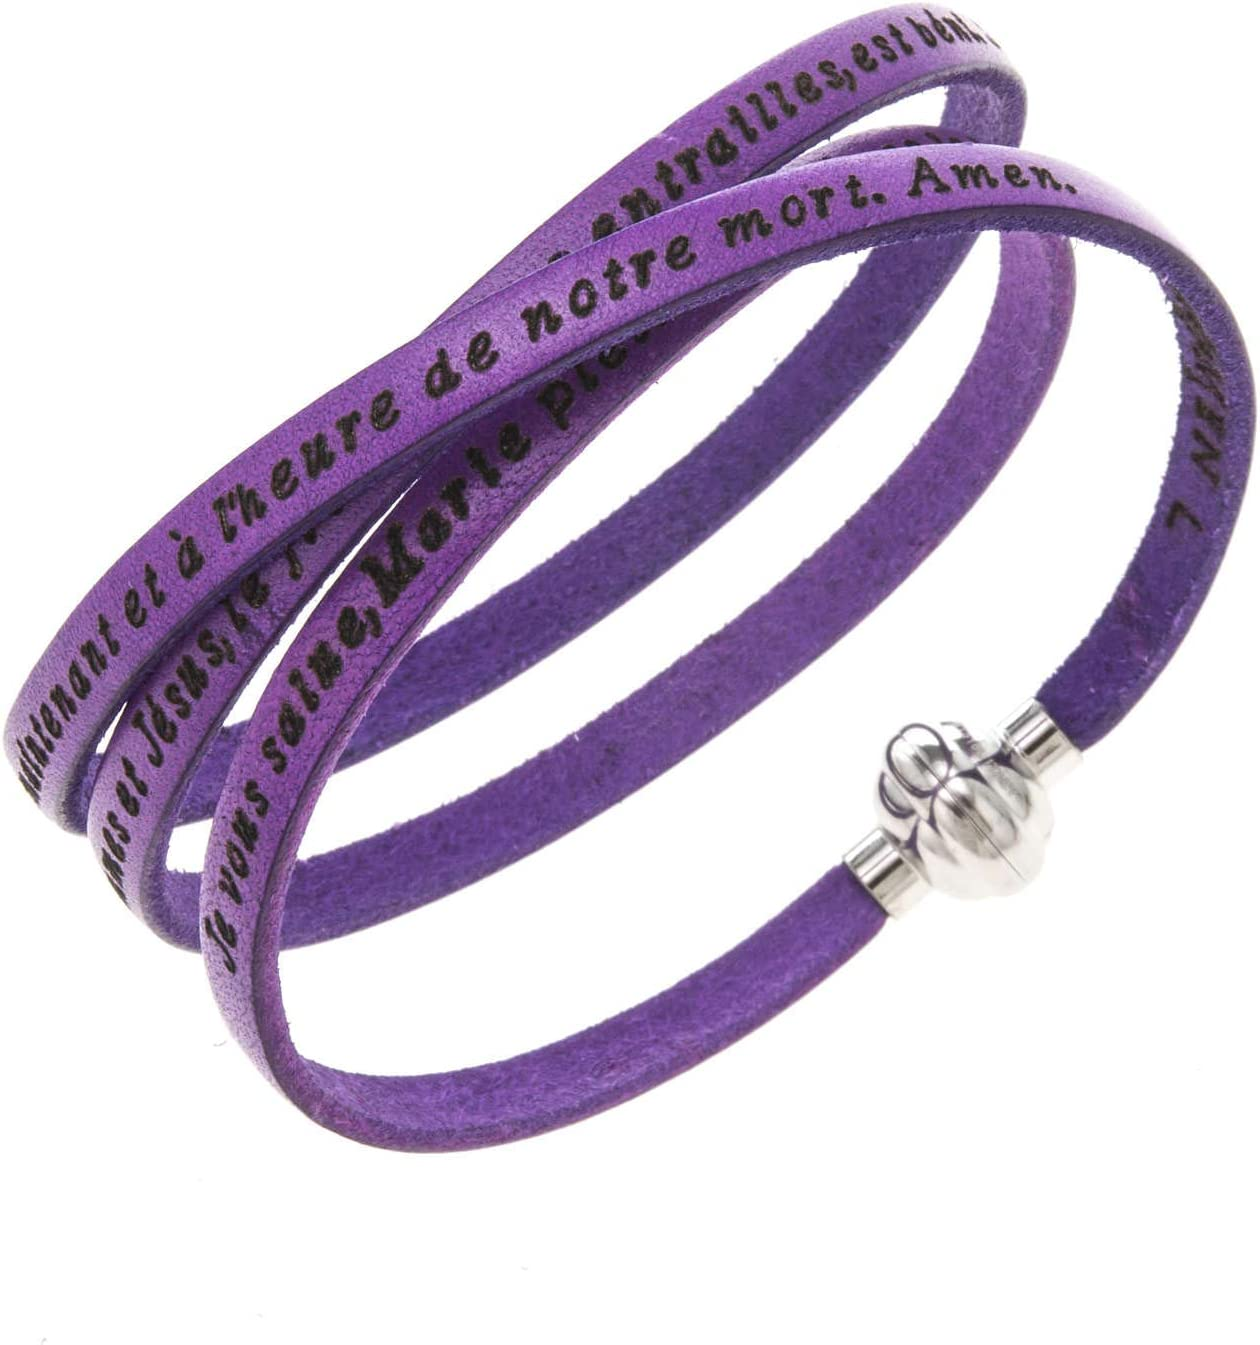 Amen Bracelet in Purple Leather Hail 23.64 inc. FRA cm 60 Max Import 86% OFF Mary